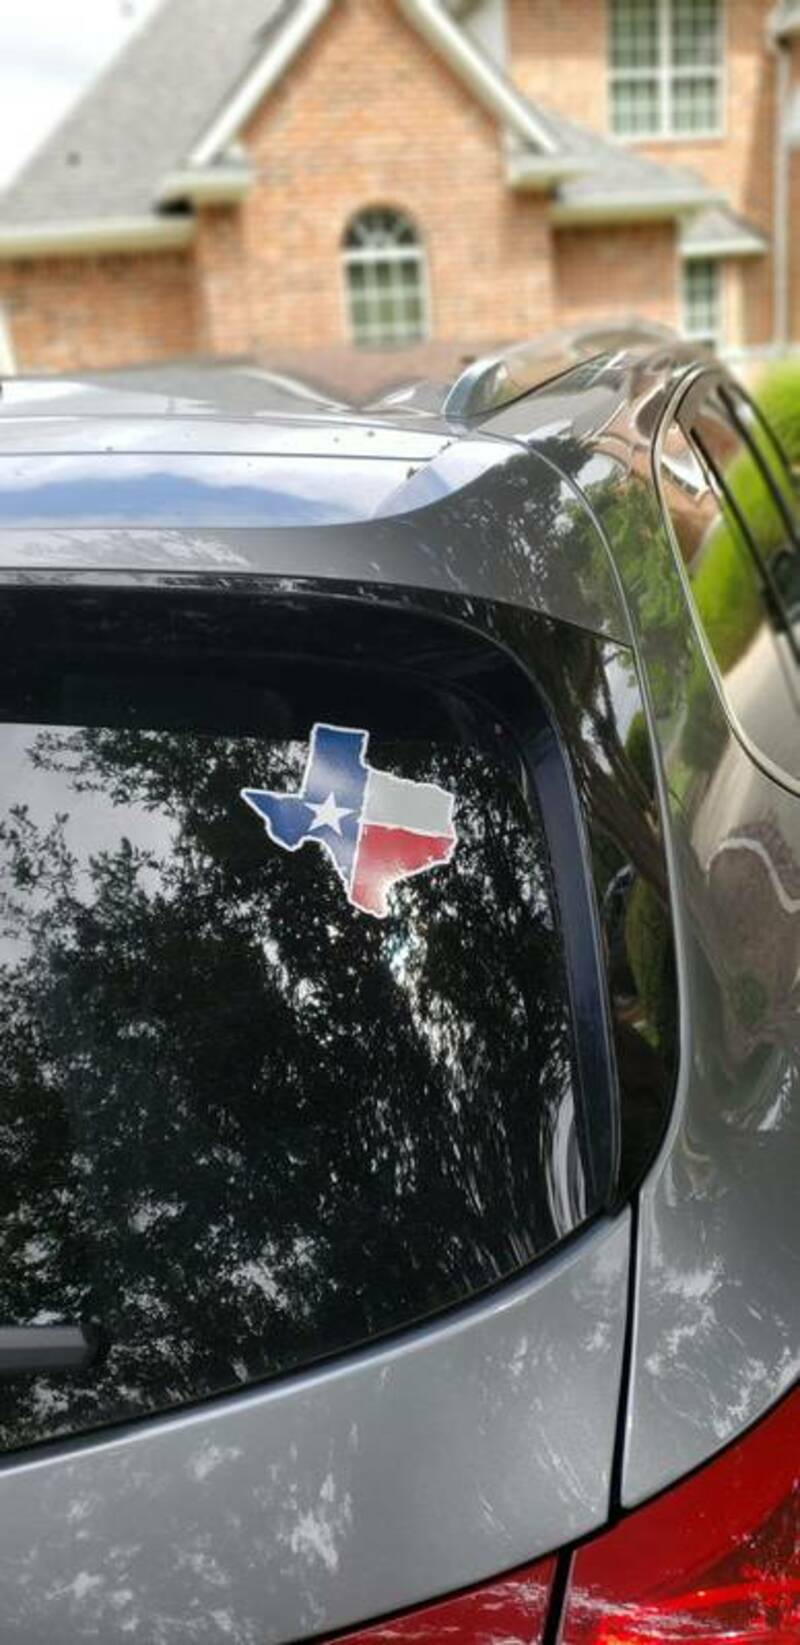 Joseph's photograph of their Distressed Texas State Sticker